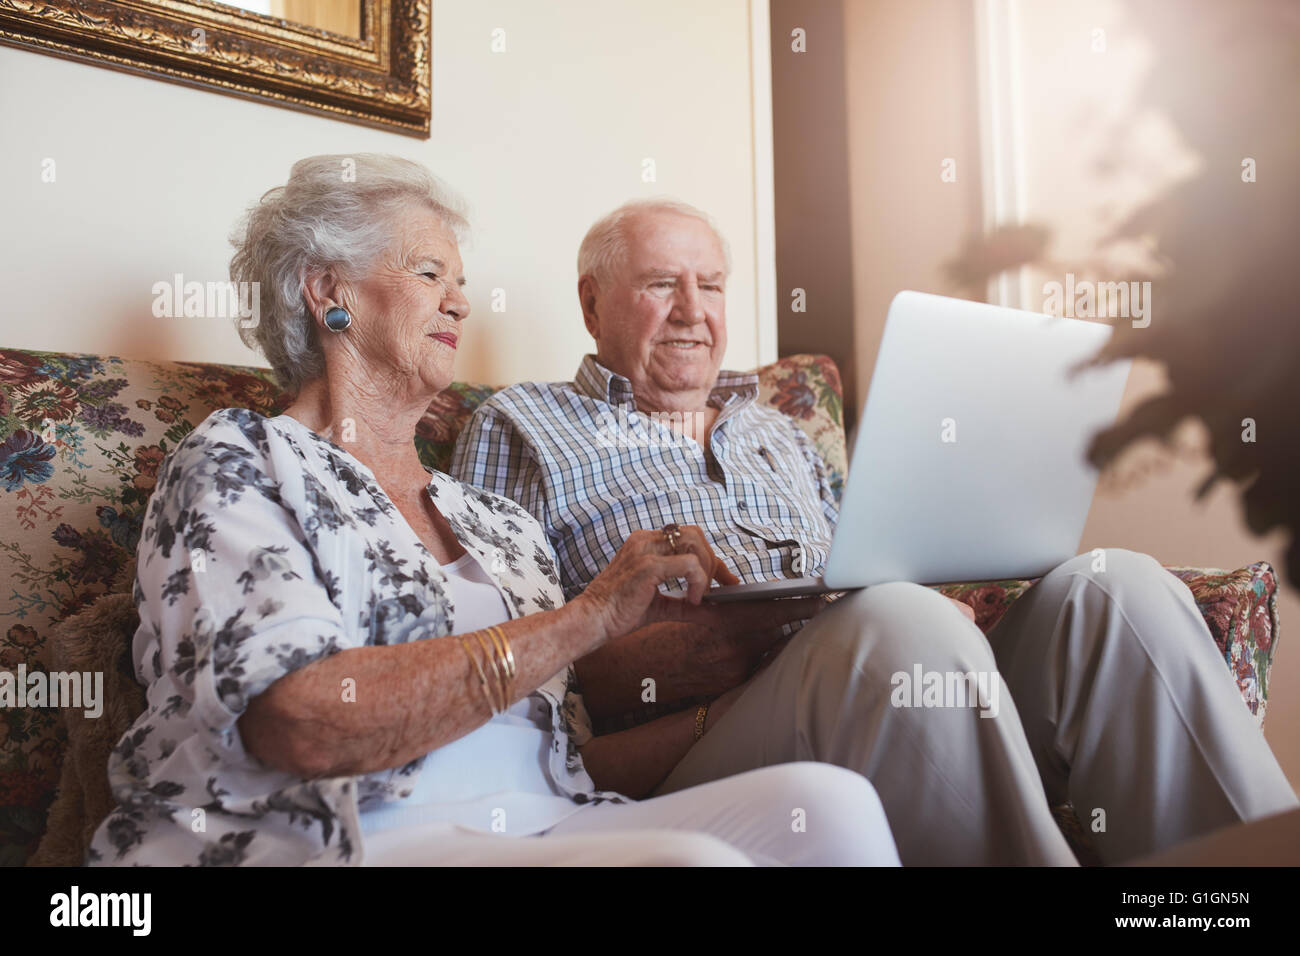 Elderly couple using laptop computer at home. Senior man and woman sitting on sofa working on laptop. - Stock Image